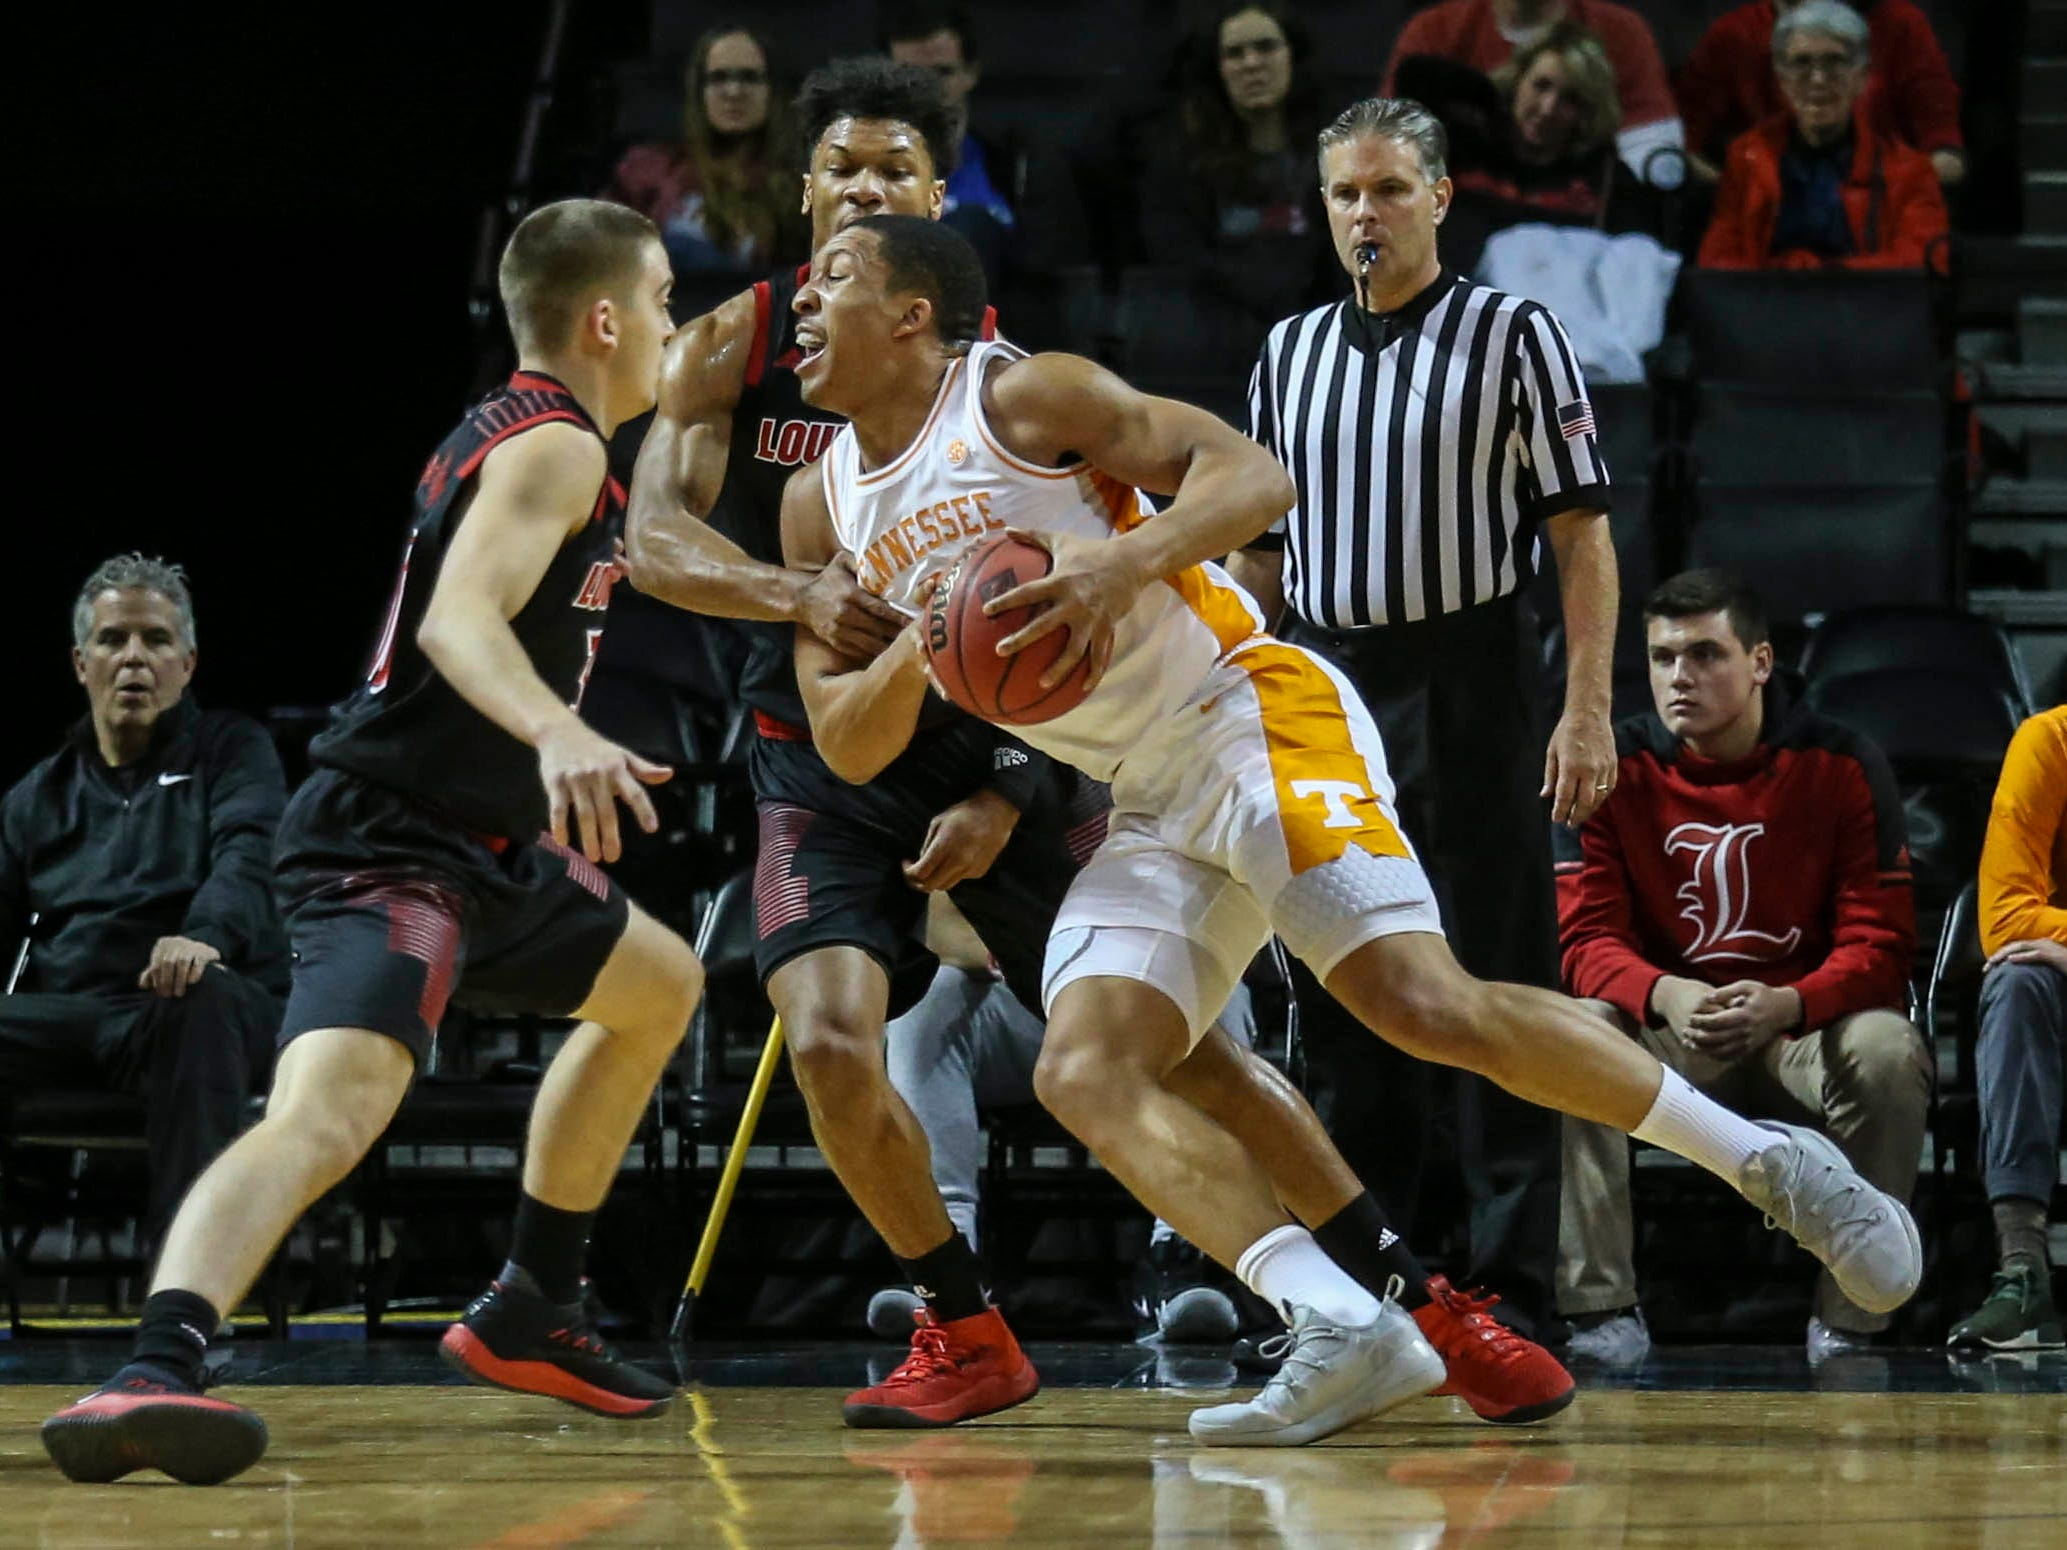 Nov 21, 2018; Brooklyn, NY, USA; Tennessee Volunteers forward Grant Williams (2) drives to the basket in the first half against the Louisville Cardinals during the NIT Tip Off at Barclays Center. Mandatory Credit: Wendell Cruz-USA TODAY Sports